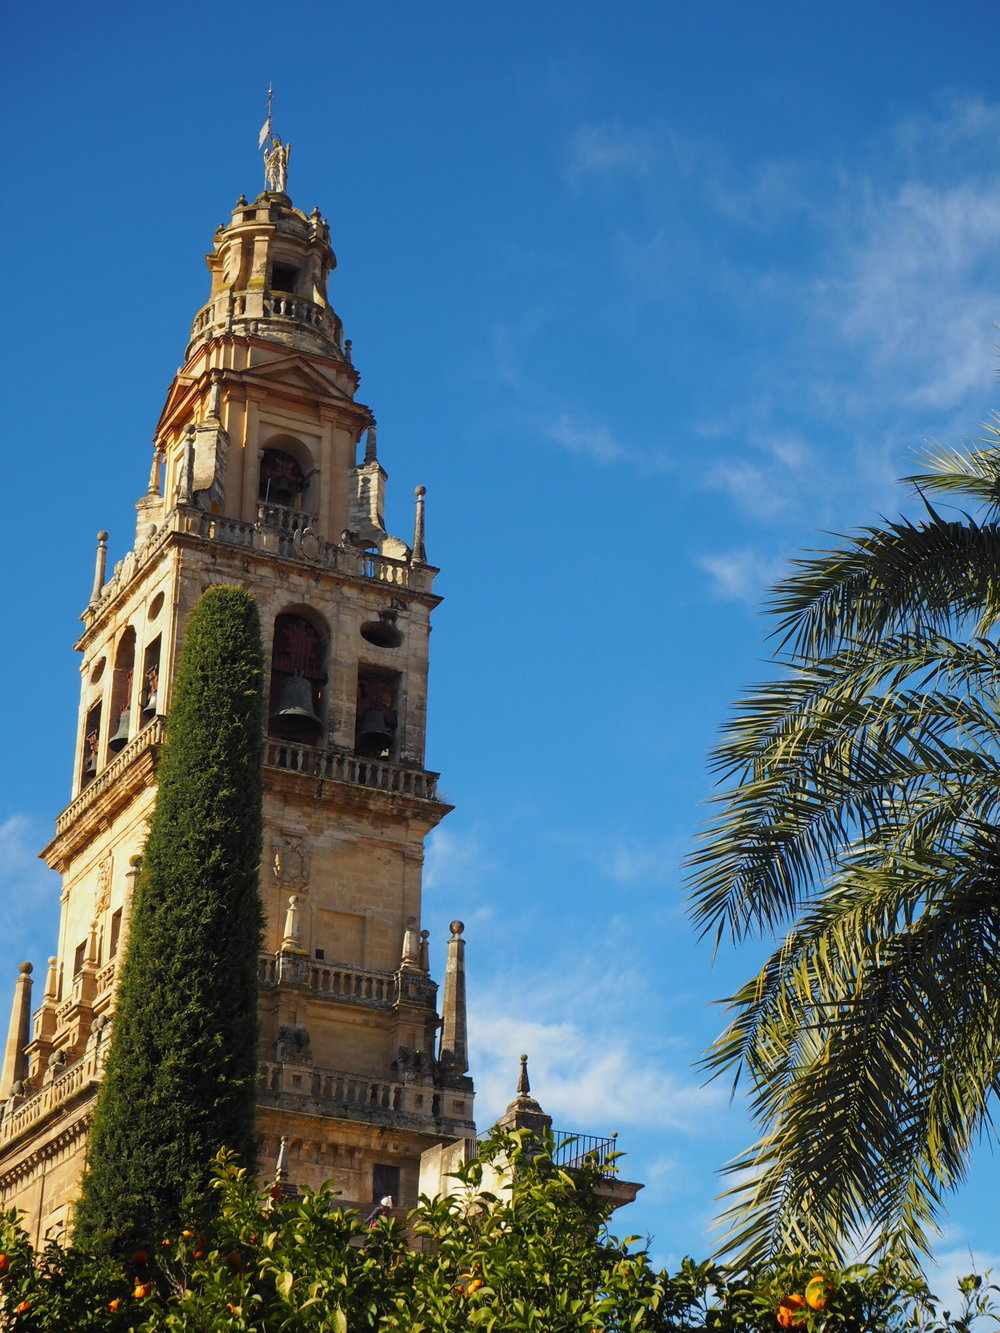 as in seville, the former minaret in Cordoba got a new addition on the top after the reconquista, turning it into a bell tower.